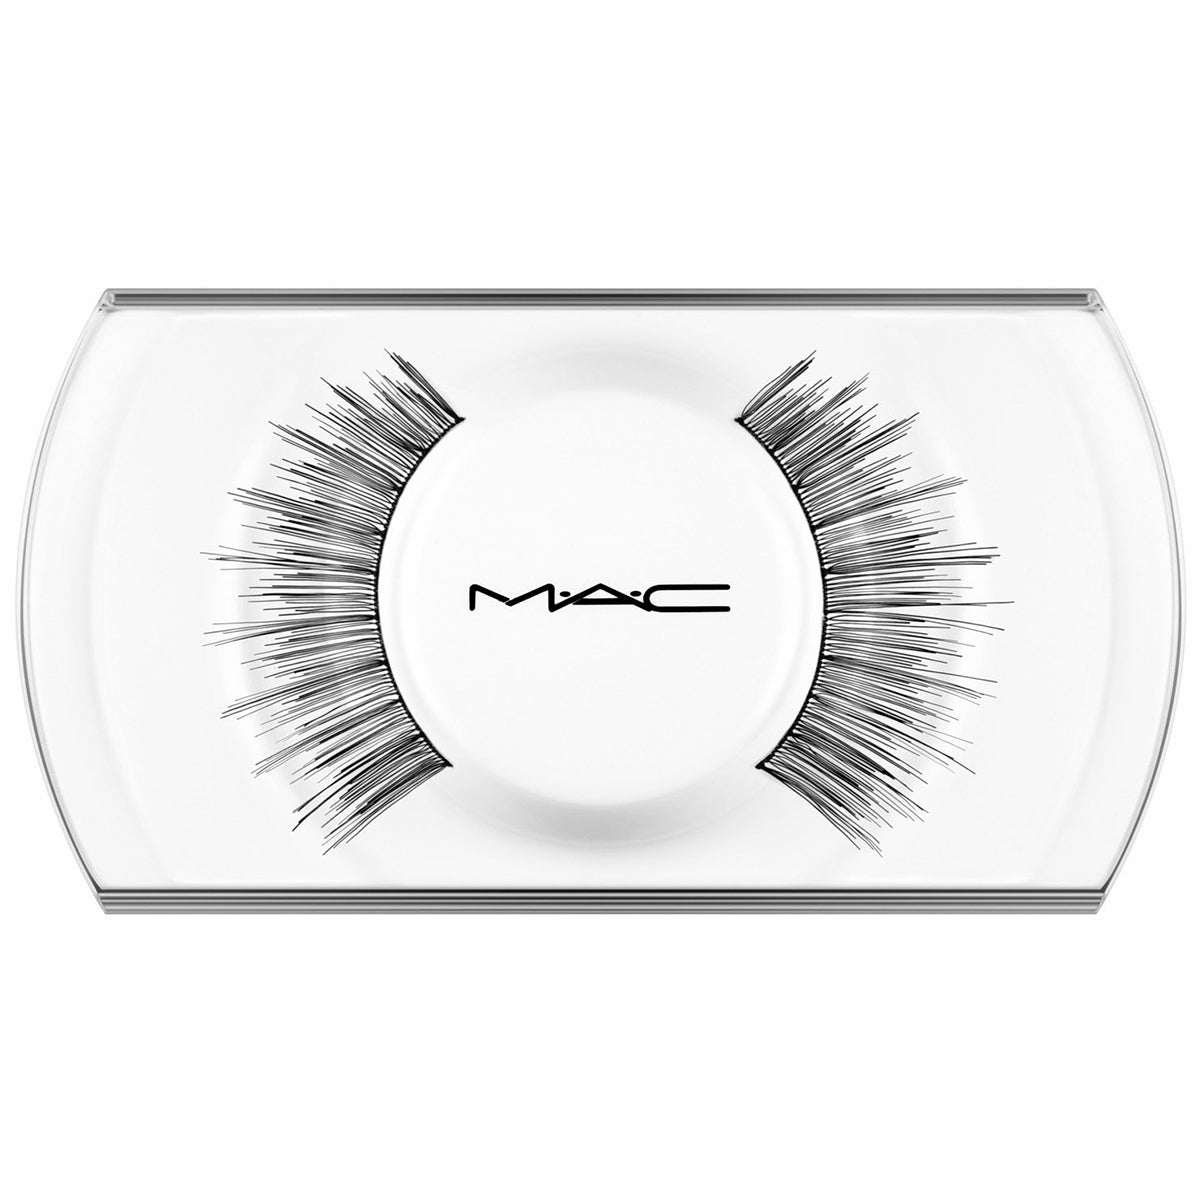 MAC Cosmetics 2 Lash